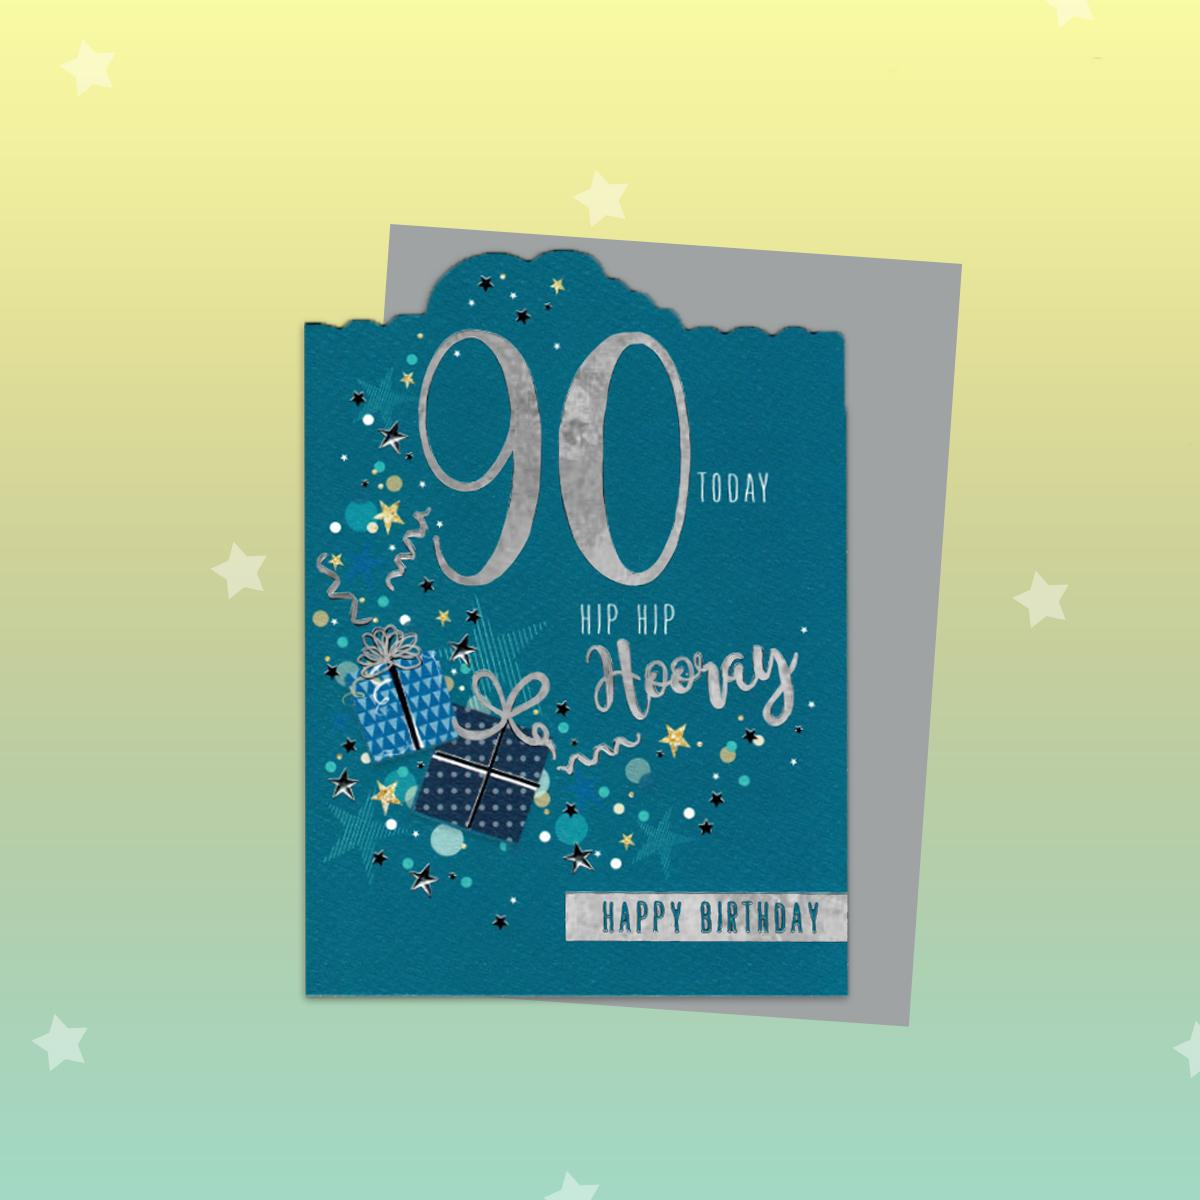 90th Hip Hip Hooray Birthday Card Alongside Its Envelope